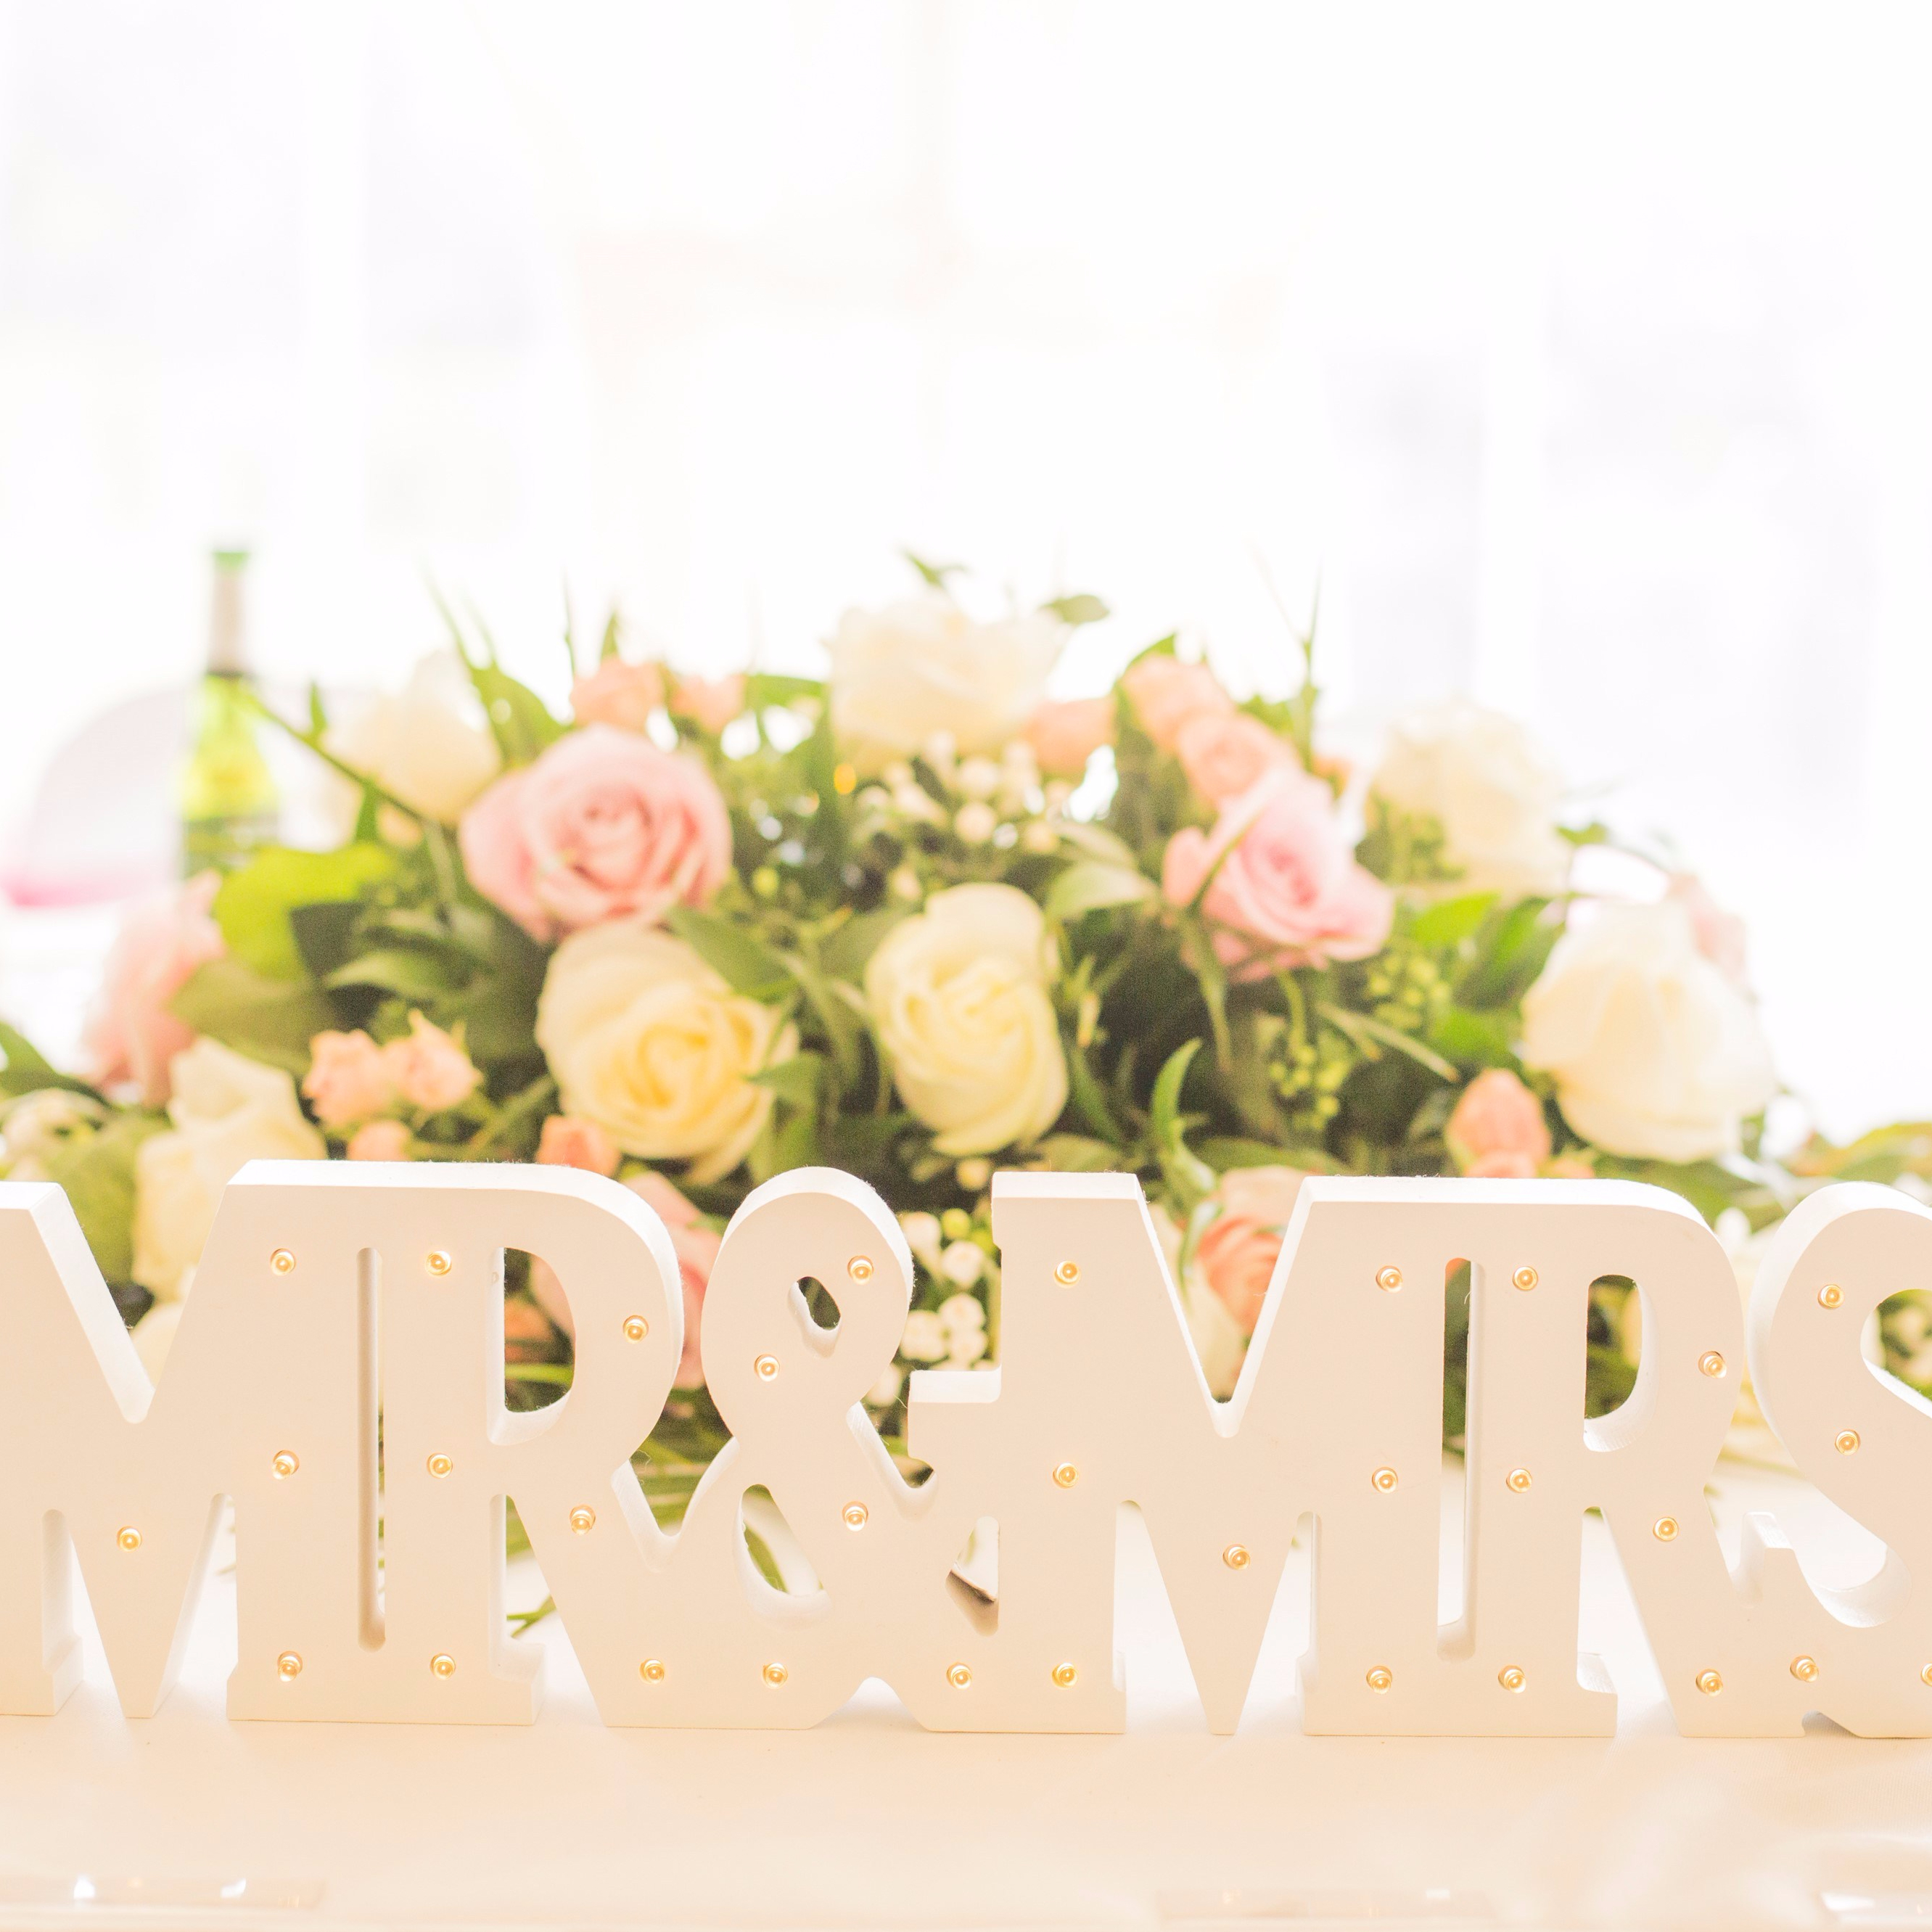 Danielle & Duncan - Real Wedding Suffolk Florist